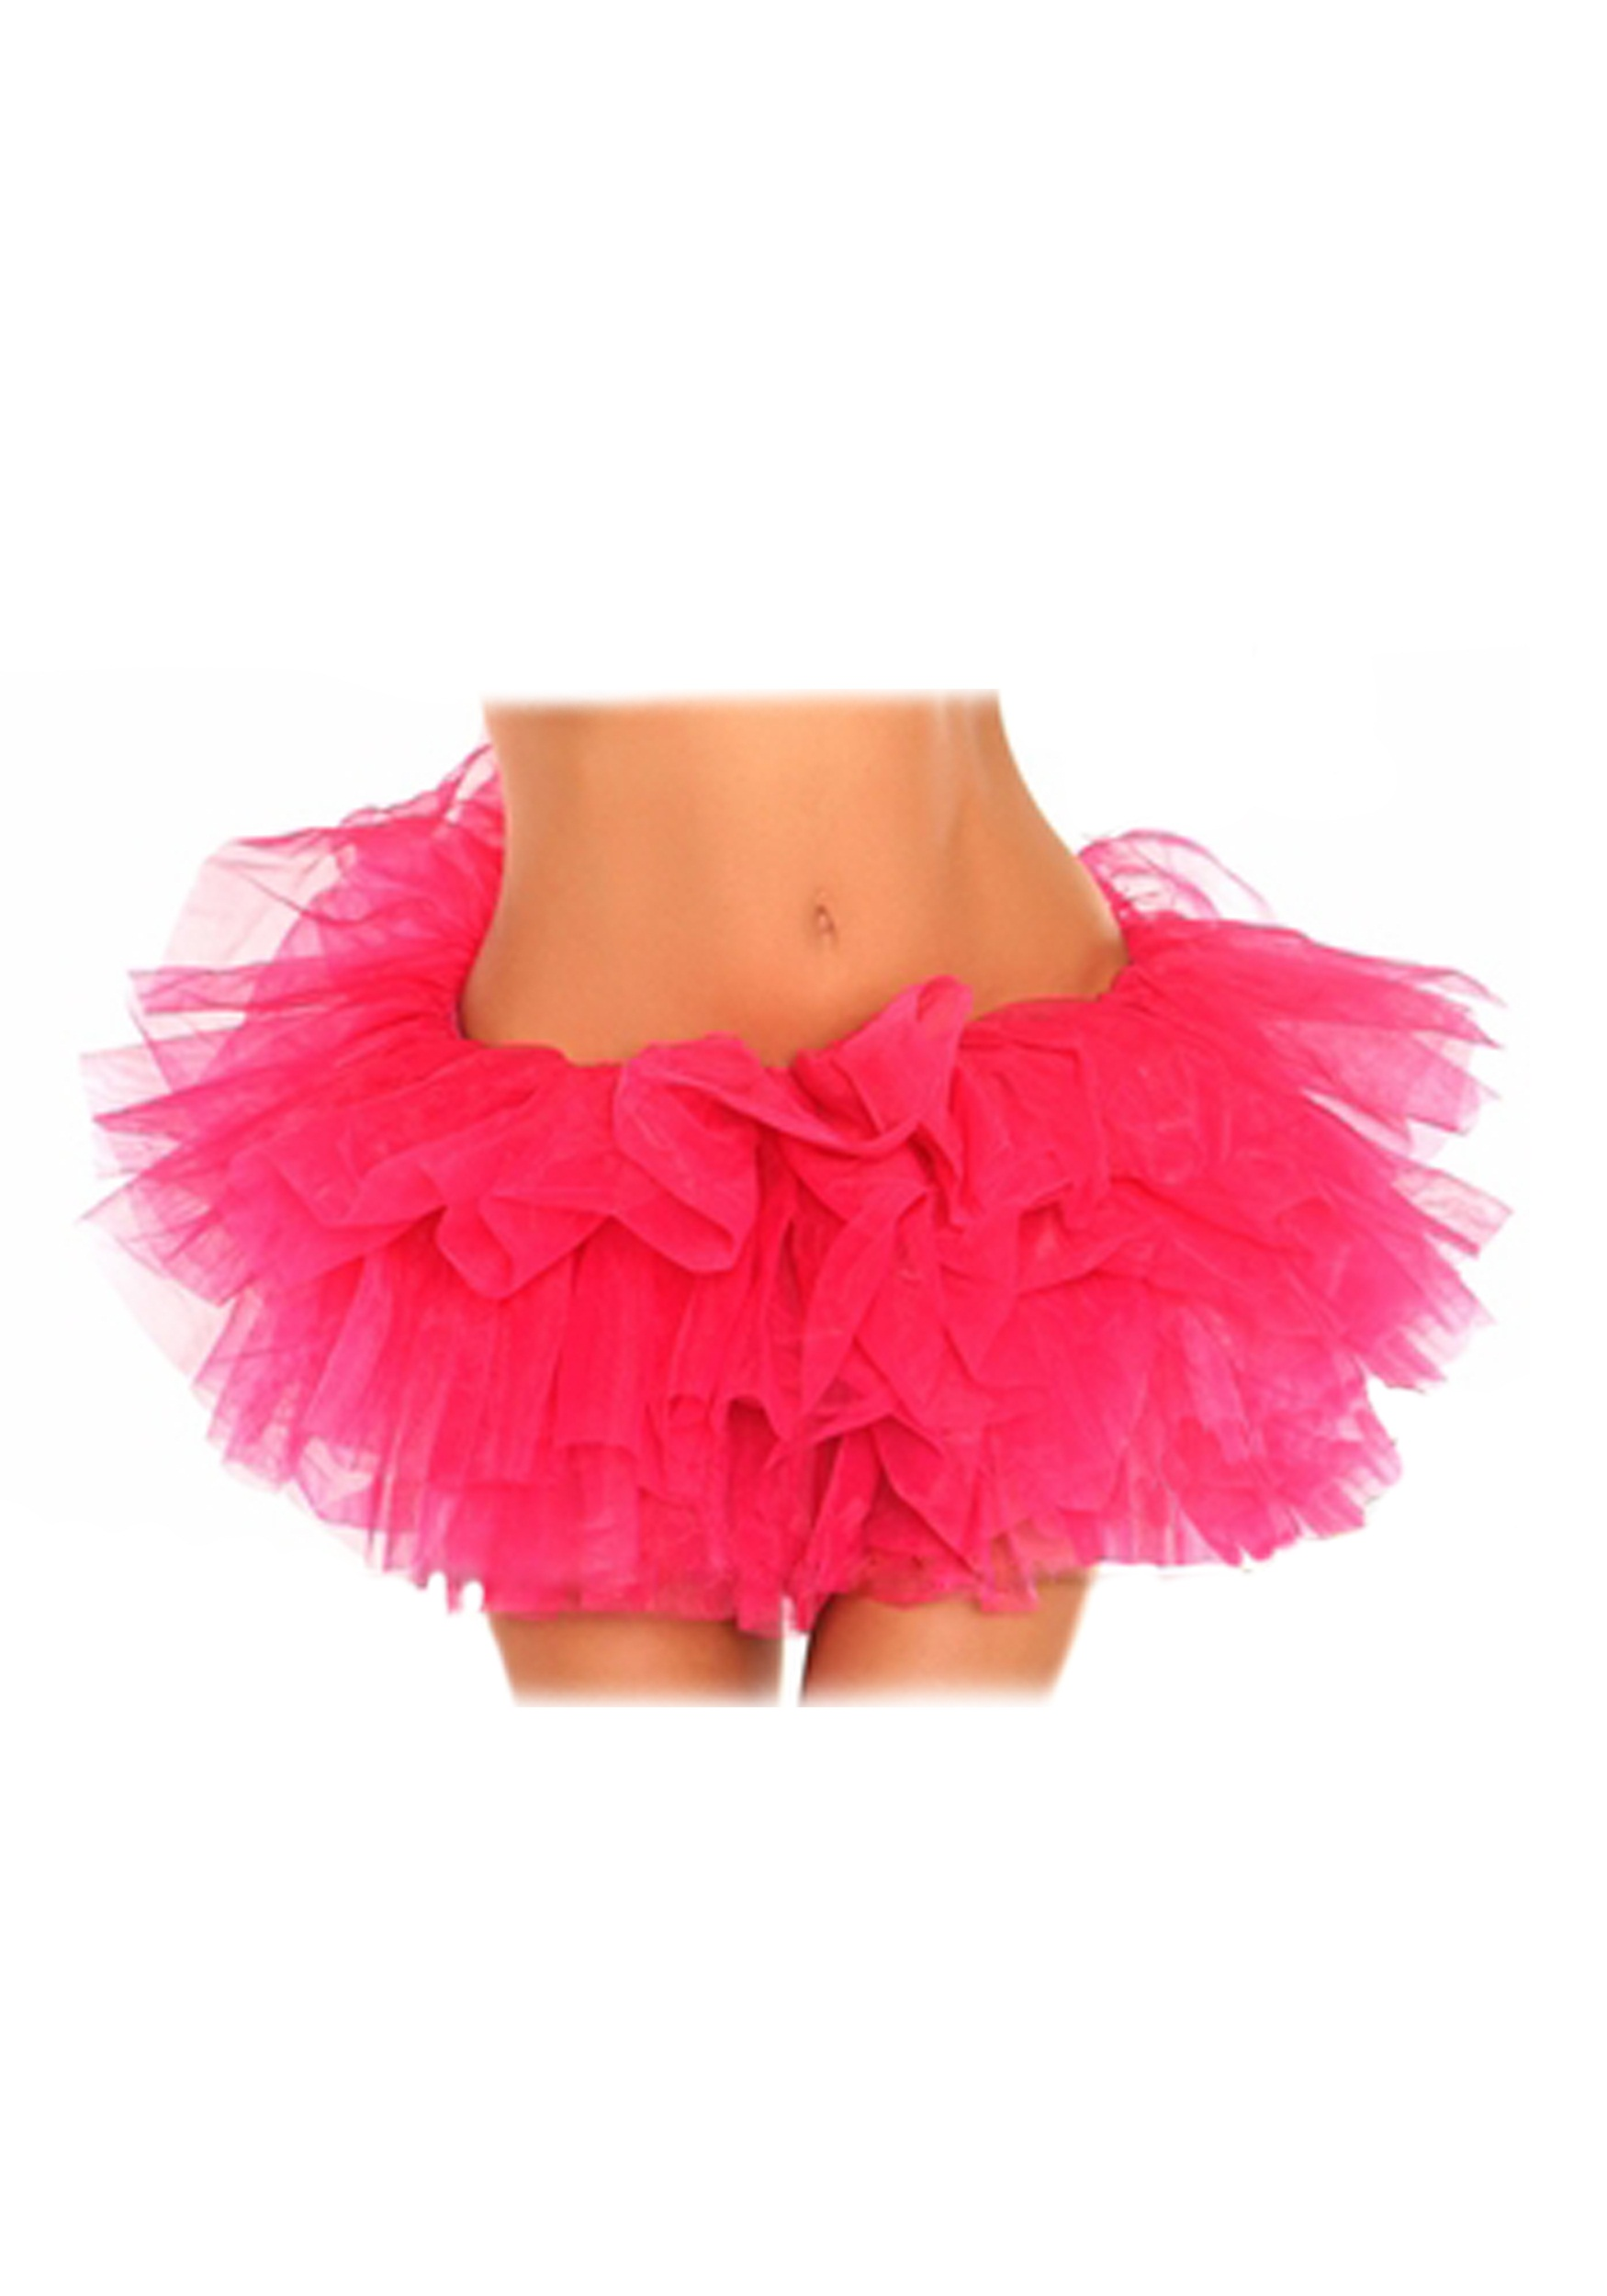 Wedding Plus Size Petticoat plus size pink tutu petticoat